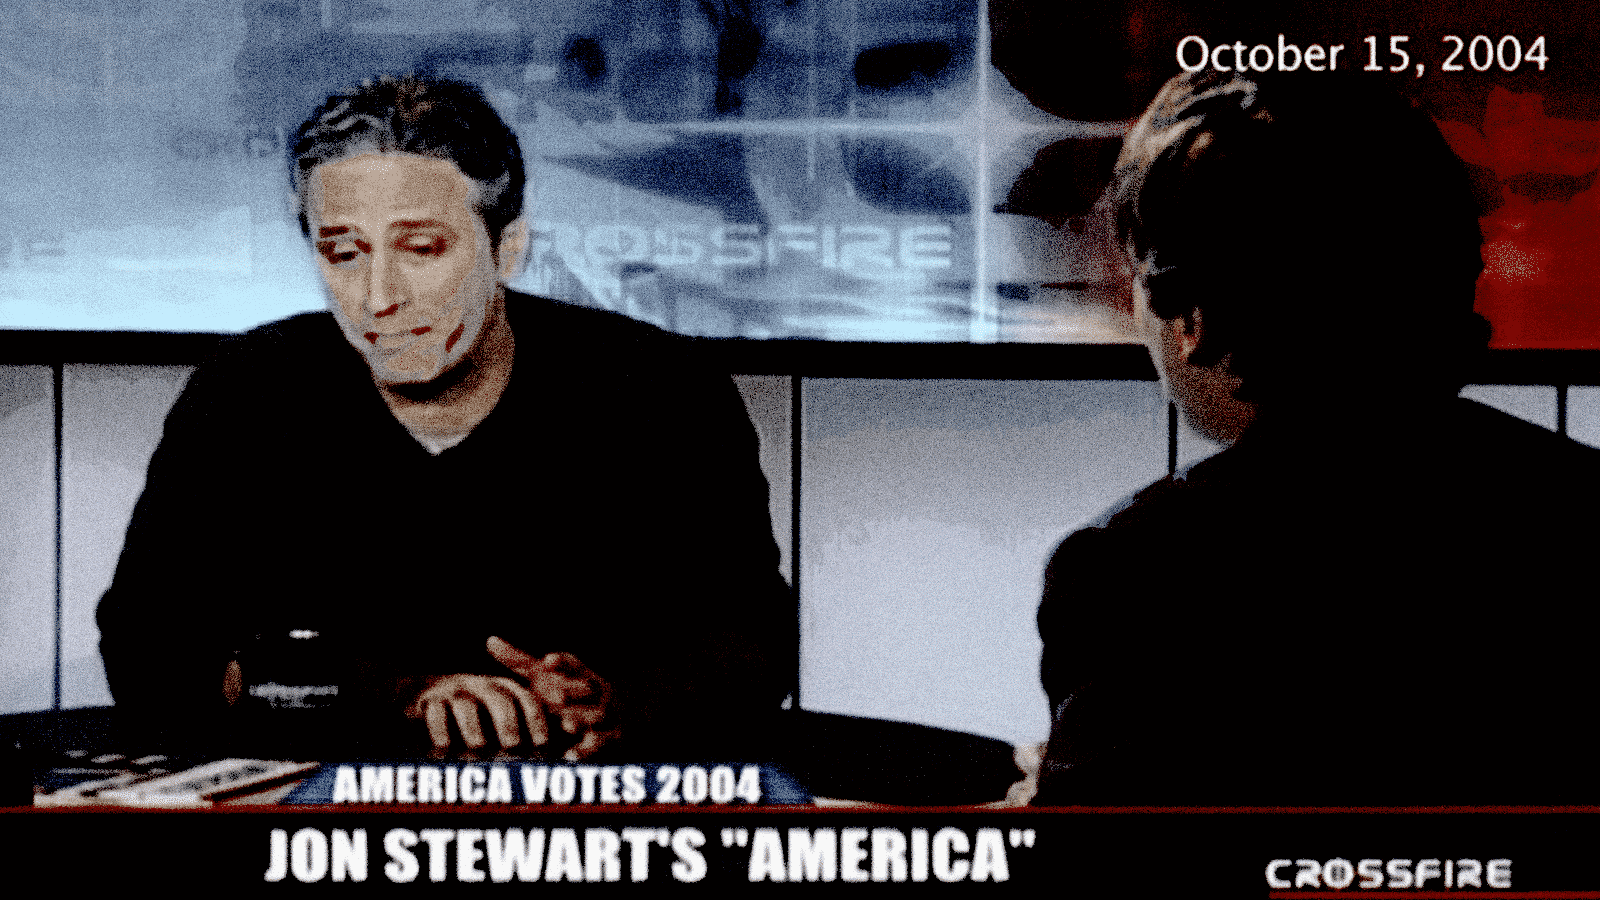 Jon Stewart on Crossfire with Tucker Carlson